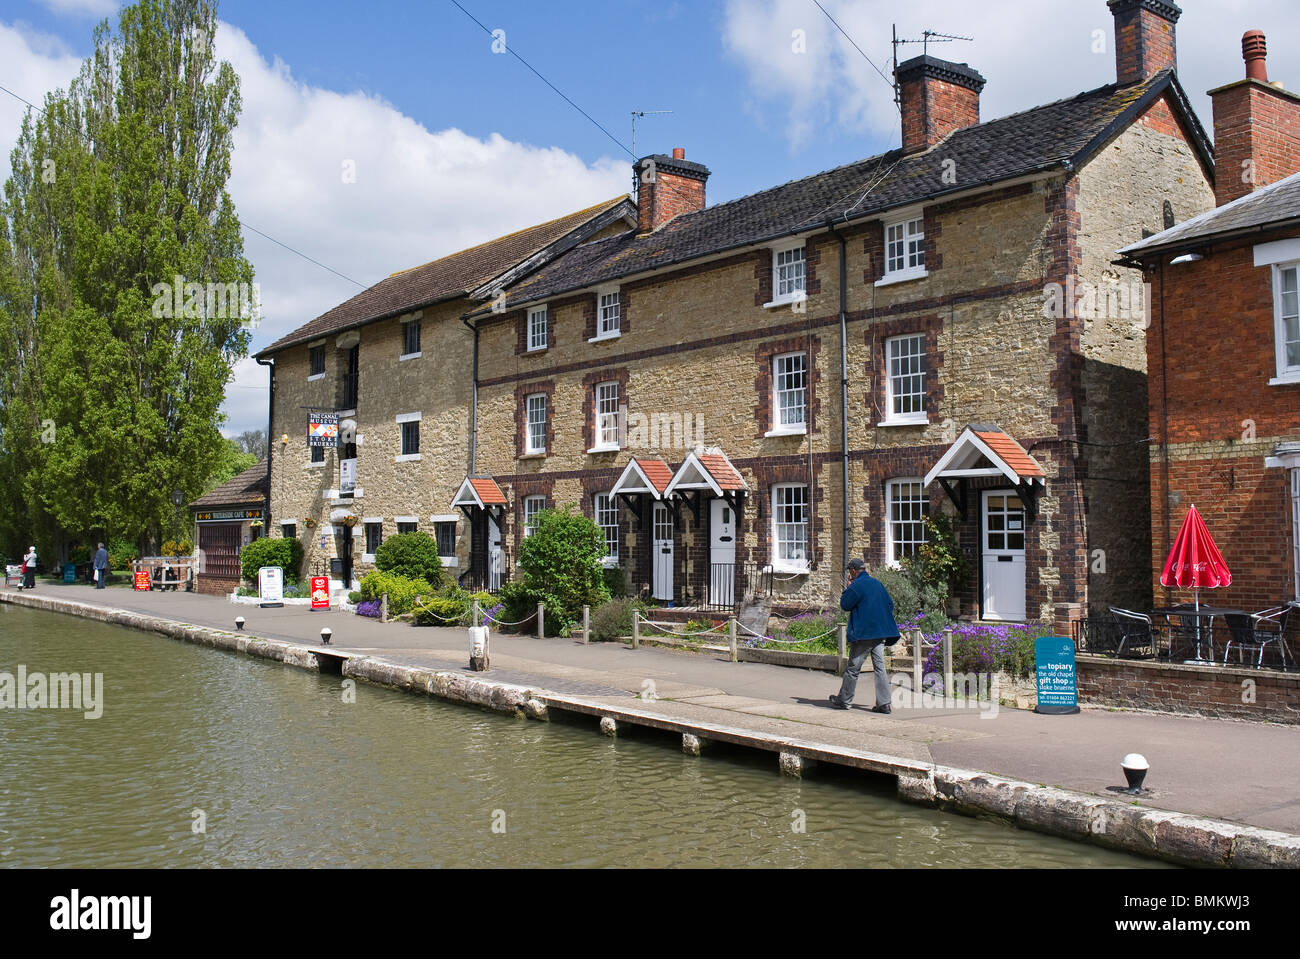 Stoke Bruerne canal and buildings - Stock Image